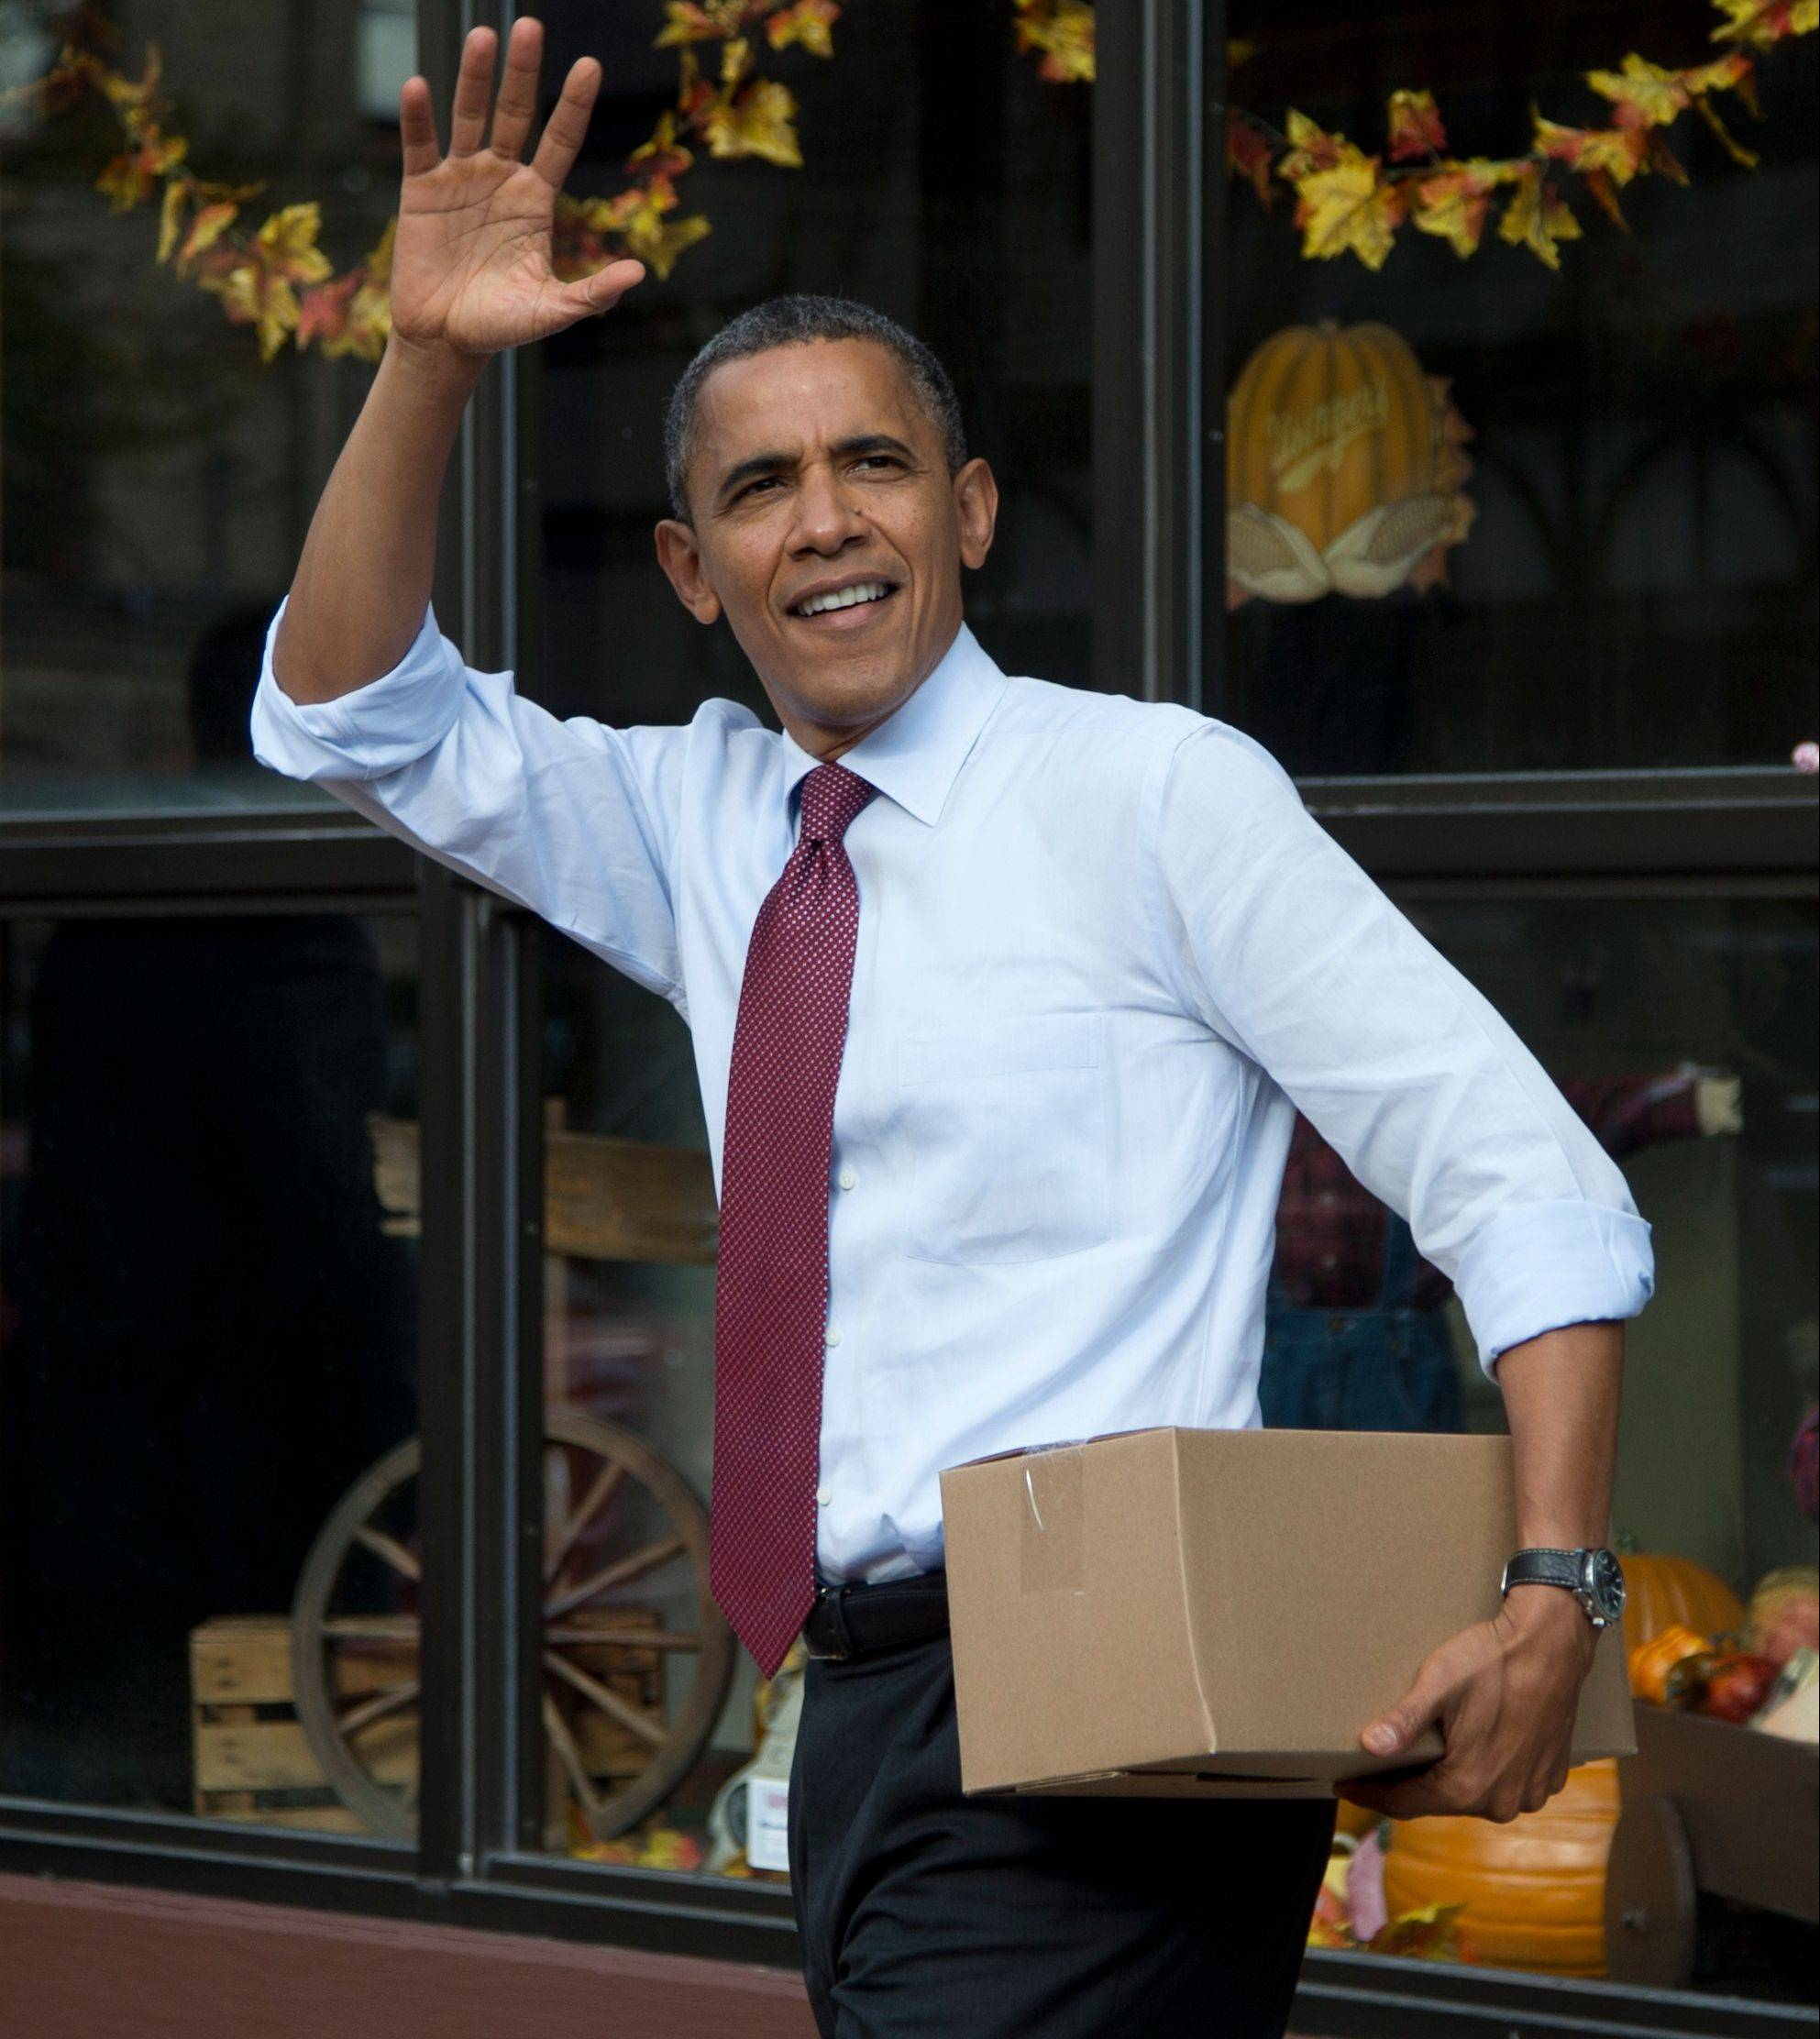 Like his Republican rival Mitt Romney, President Barack Obama is trying to coax undecided voters to side with him -- even if it takes buying a box of bratwurst sausages, as Obama is seen doing above Saturday in Milwaukee.